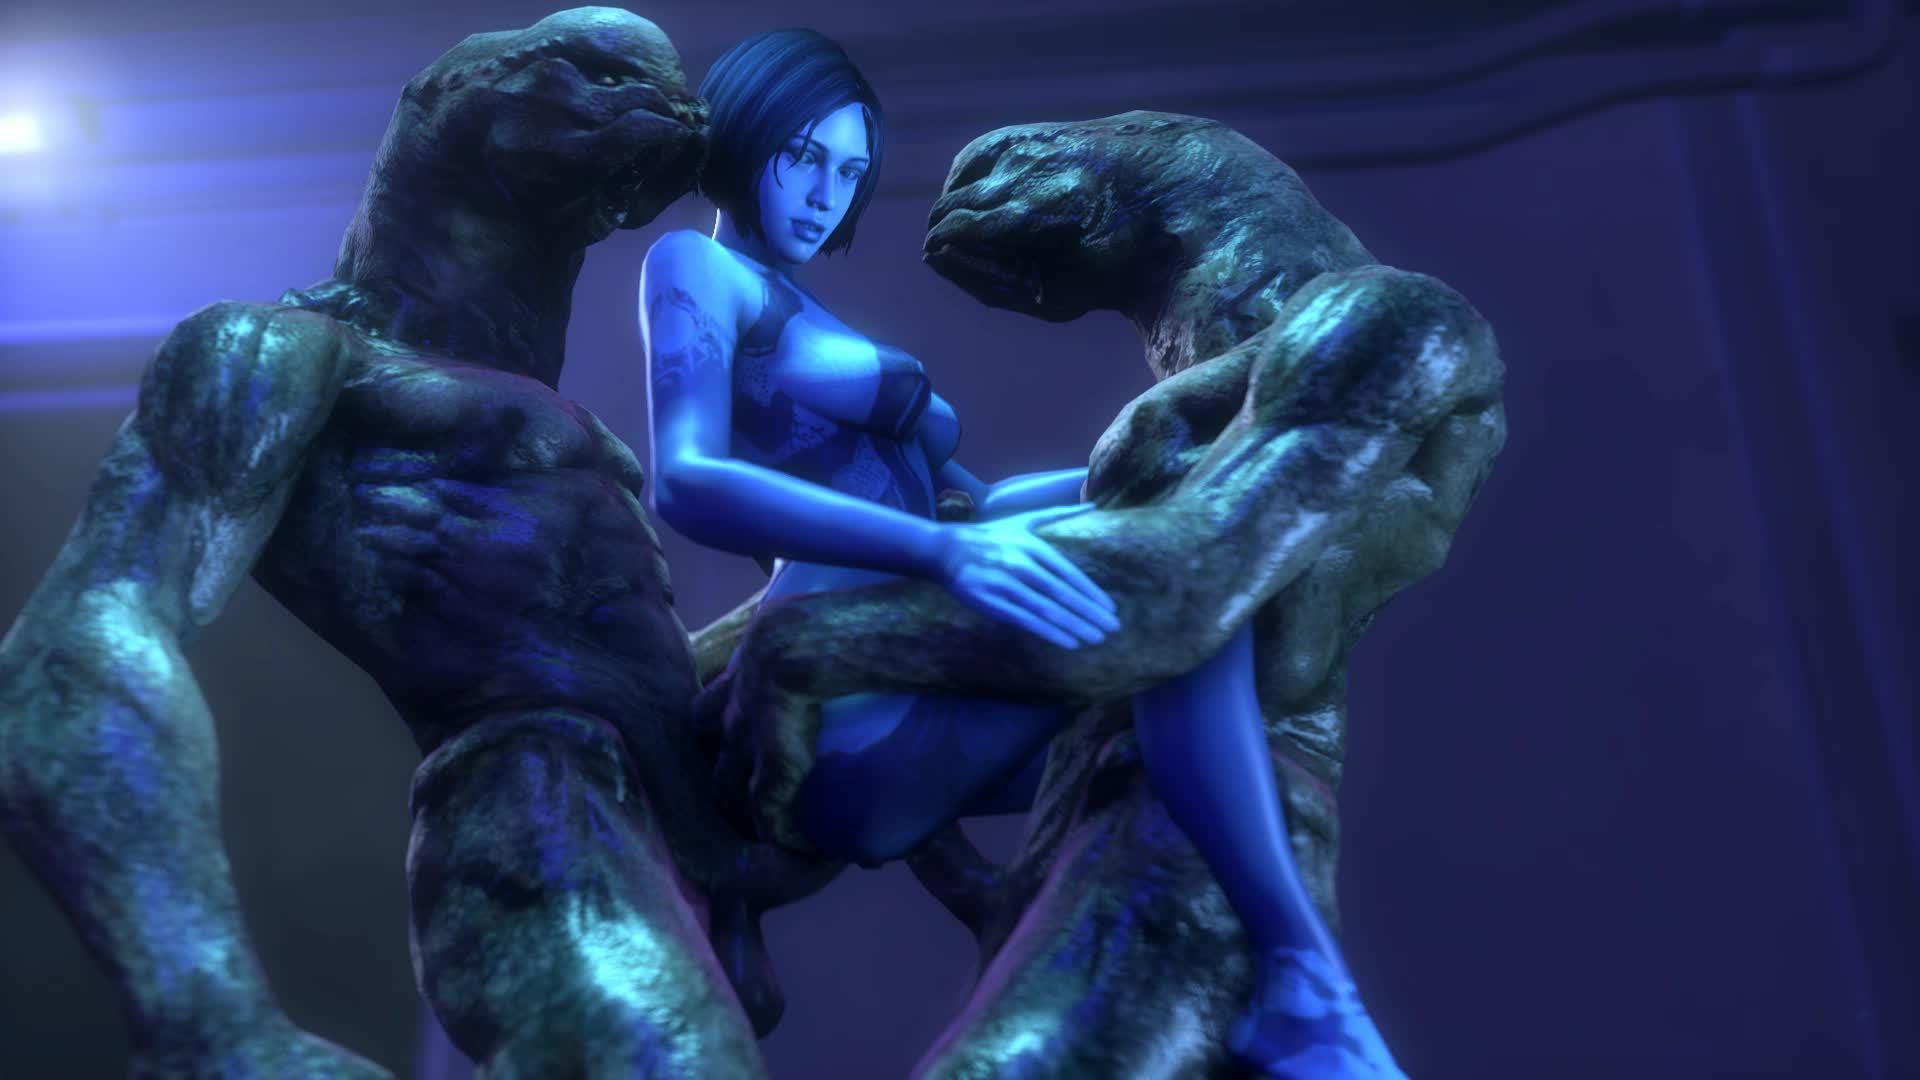 Animated Cortana Halo Sound Source_Filmmaker noname55 // 1920x1080 // 7.3MB // webm